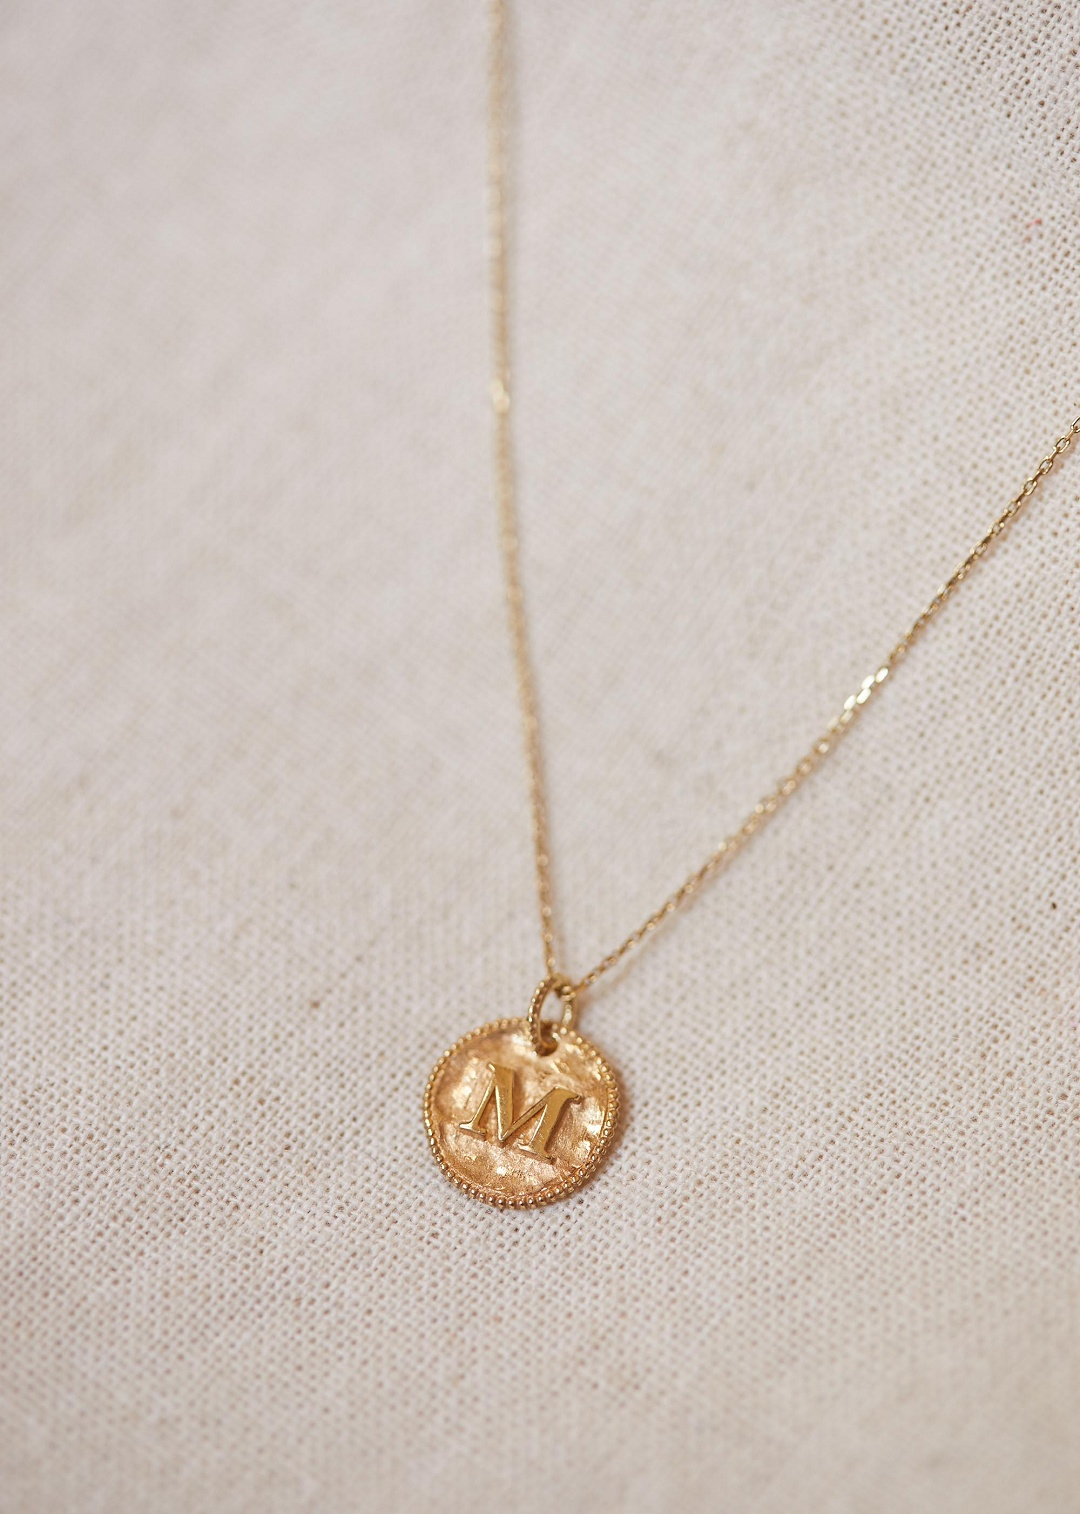 Sézane – Sara Pendant – Letters I To P Within Most Popular Letter K Alphabet Locket Element Necklaces (View 14 of 25)